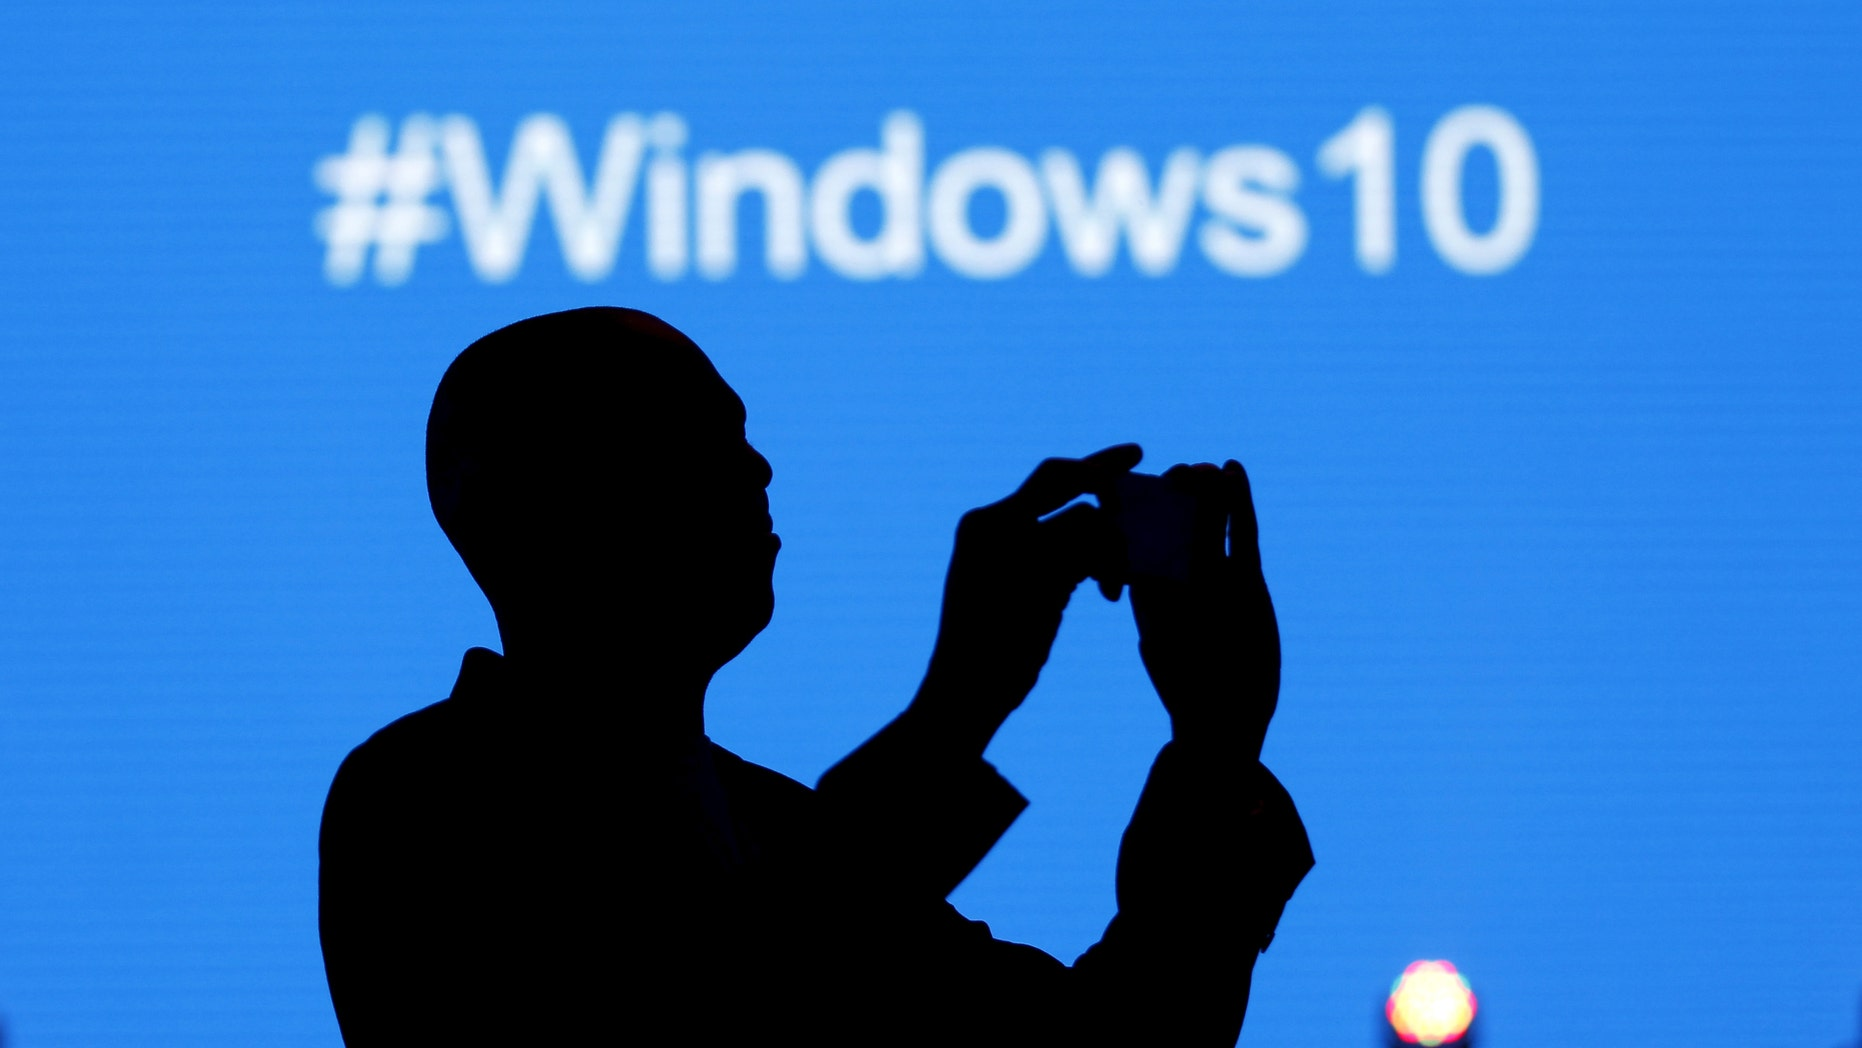 Westlake Legal Group Windows10Launch1 7 Windows 10 fixes you'll wish you knew sooner The Kim Komando Show Kim Komando fox-news/tech/topics/software fox-news/tech/technologies/windows-os fox-news/tech/companies/microsoft fnc/tech fnc de3215b1-115a-50b7-9c53-fbce76a064e9 article